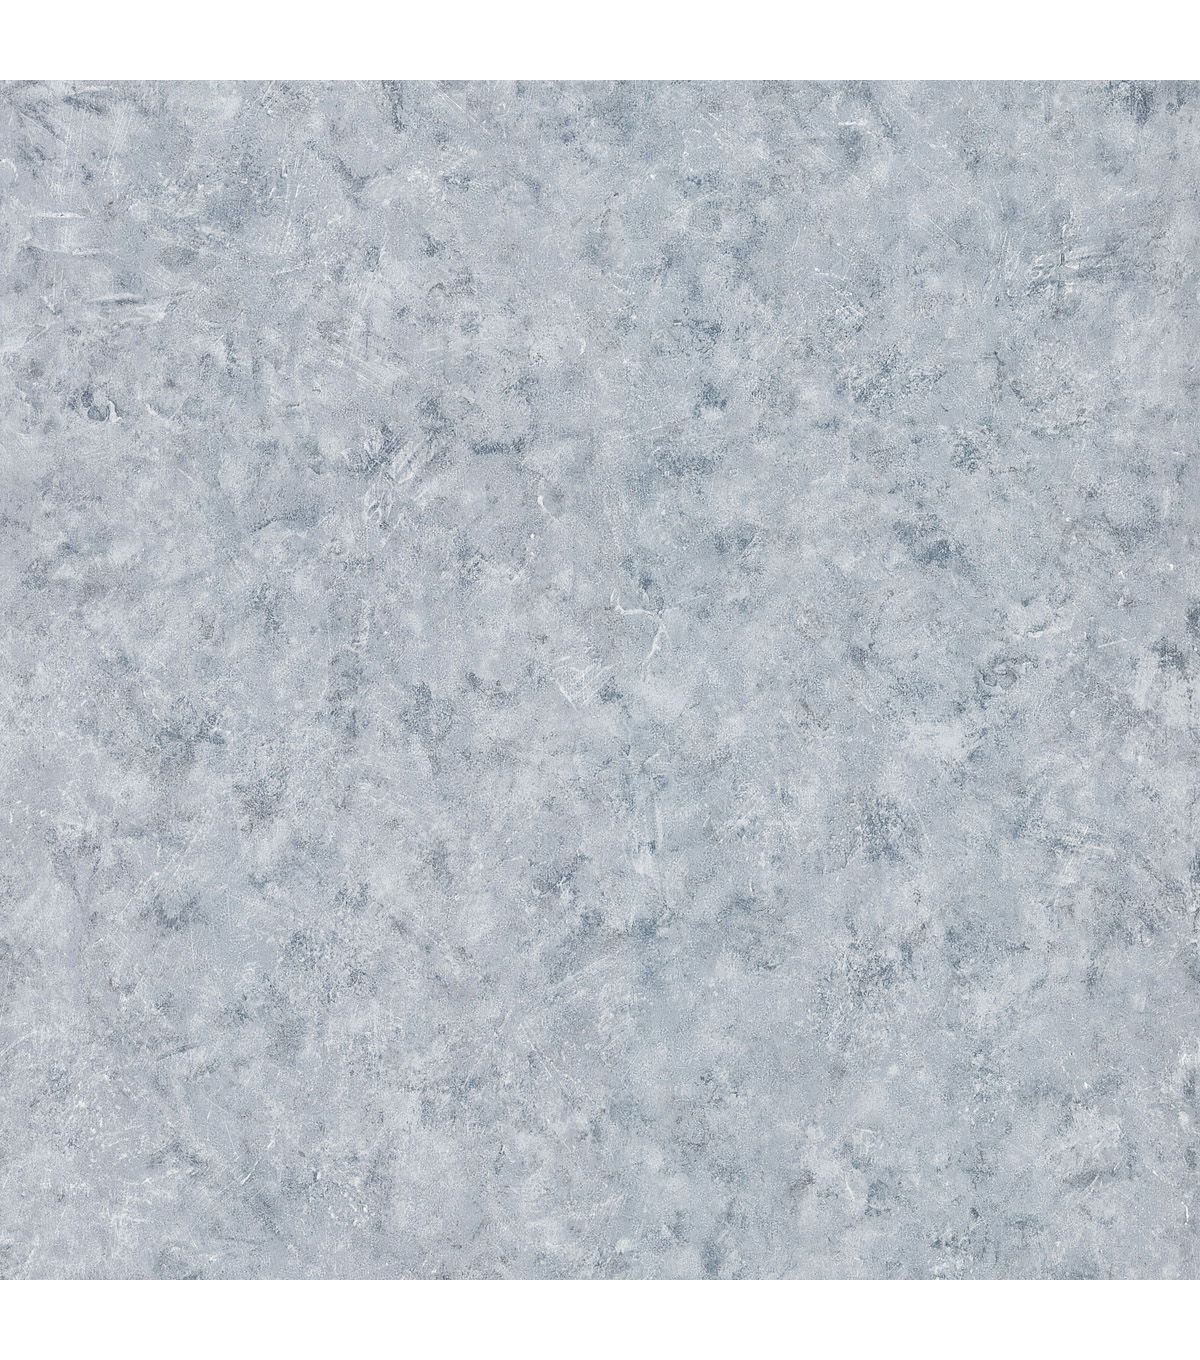 Giovanni Blue Scratch Marble Wallpaper Sample